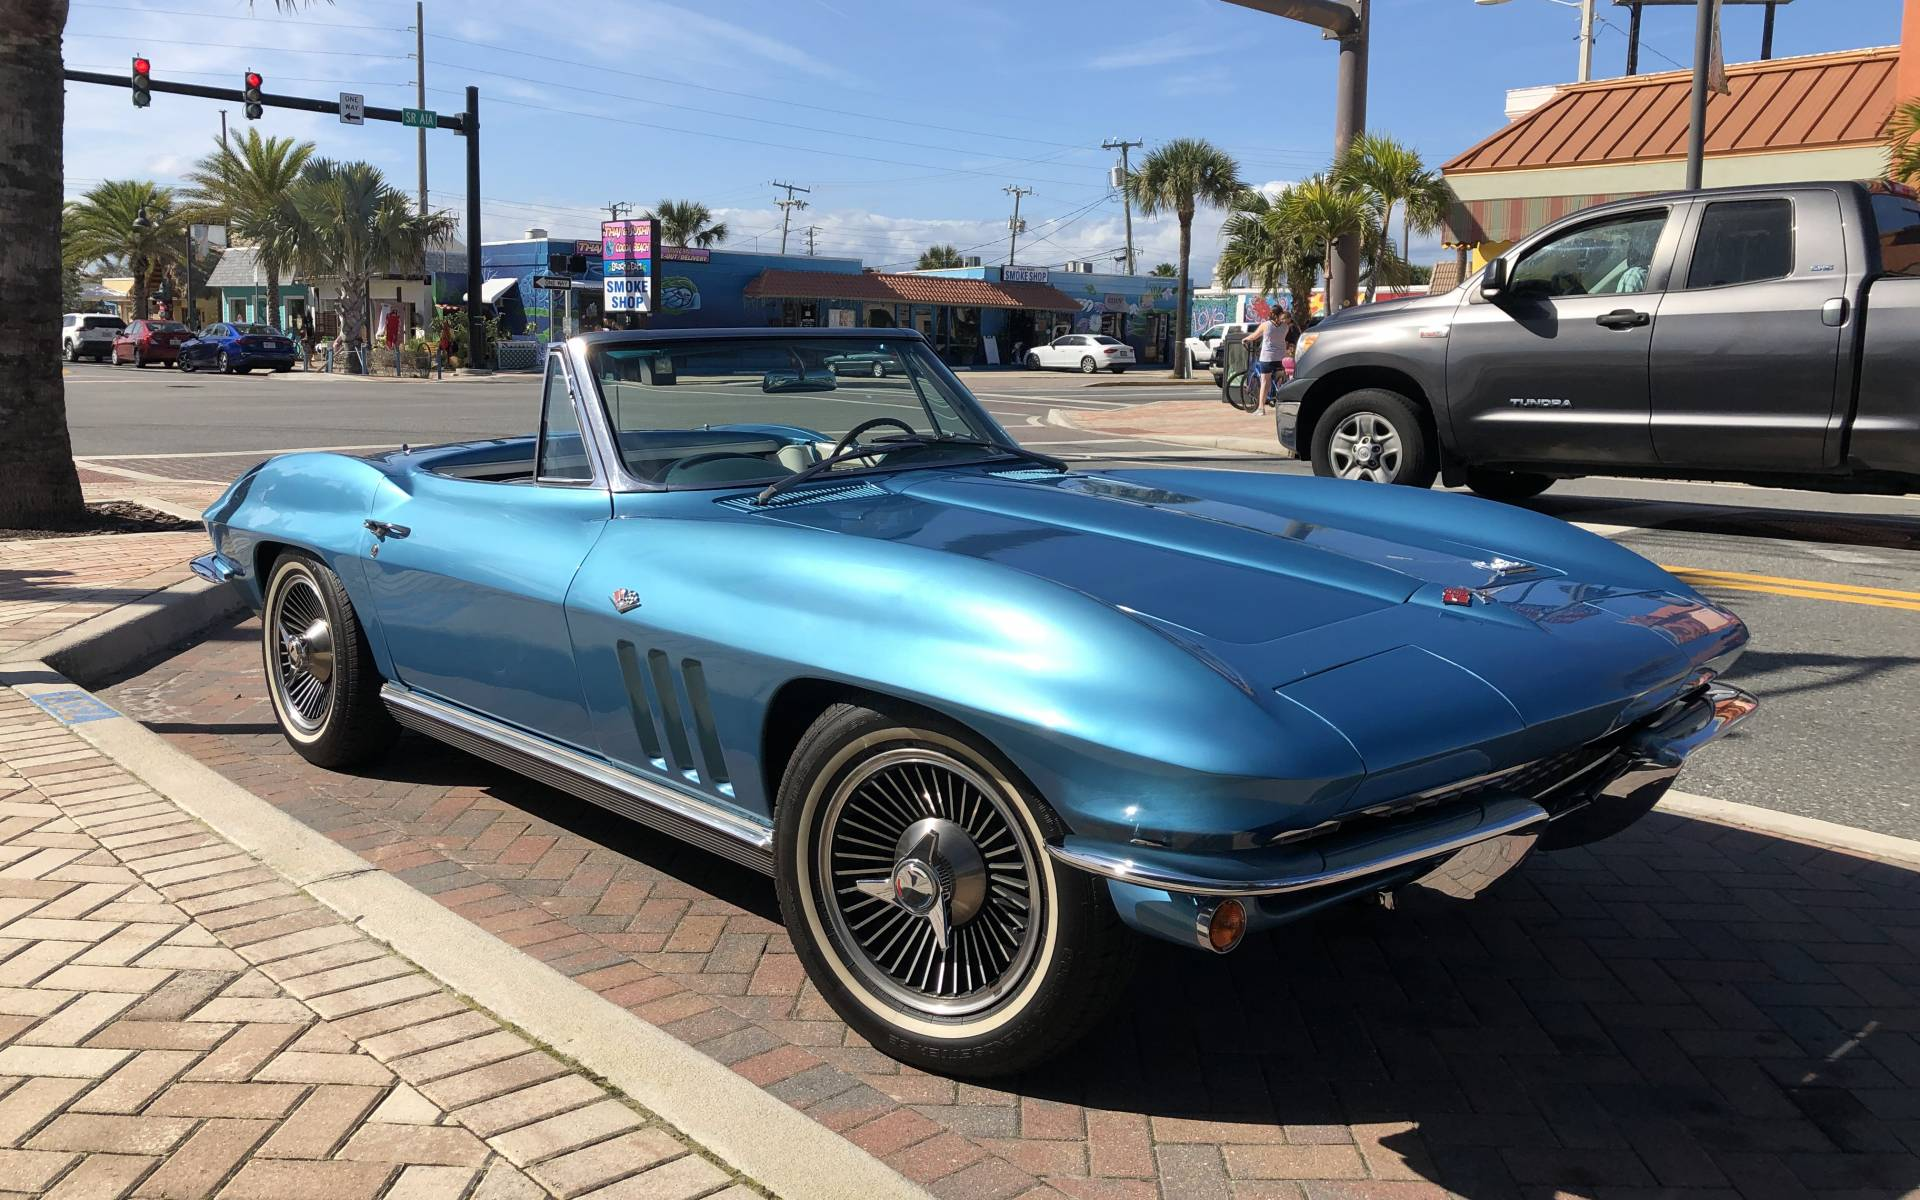 <p><strong>Chevrolet Corvette Sting Ray</strong></p>